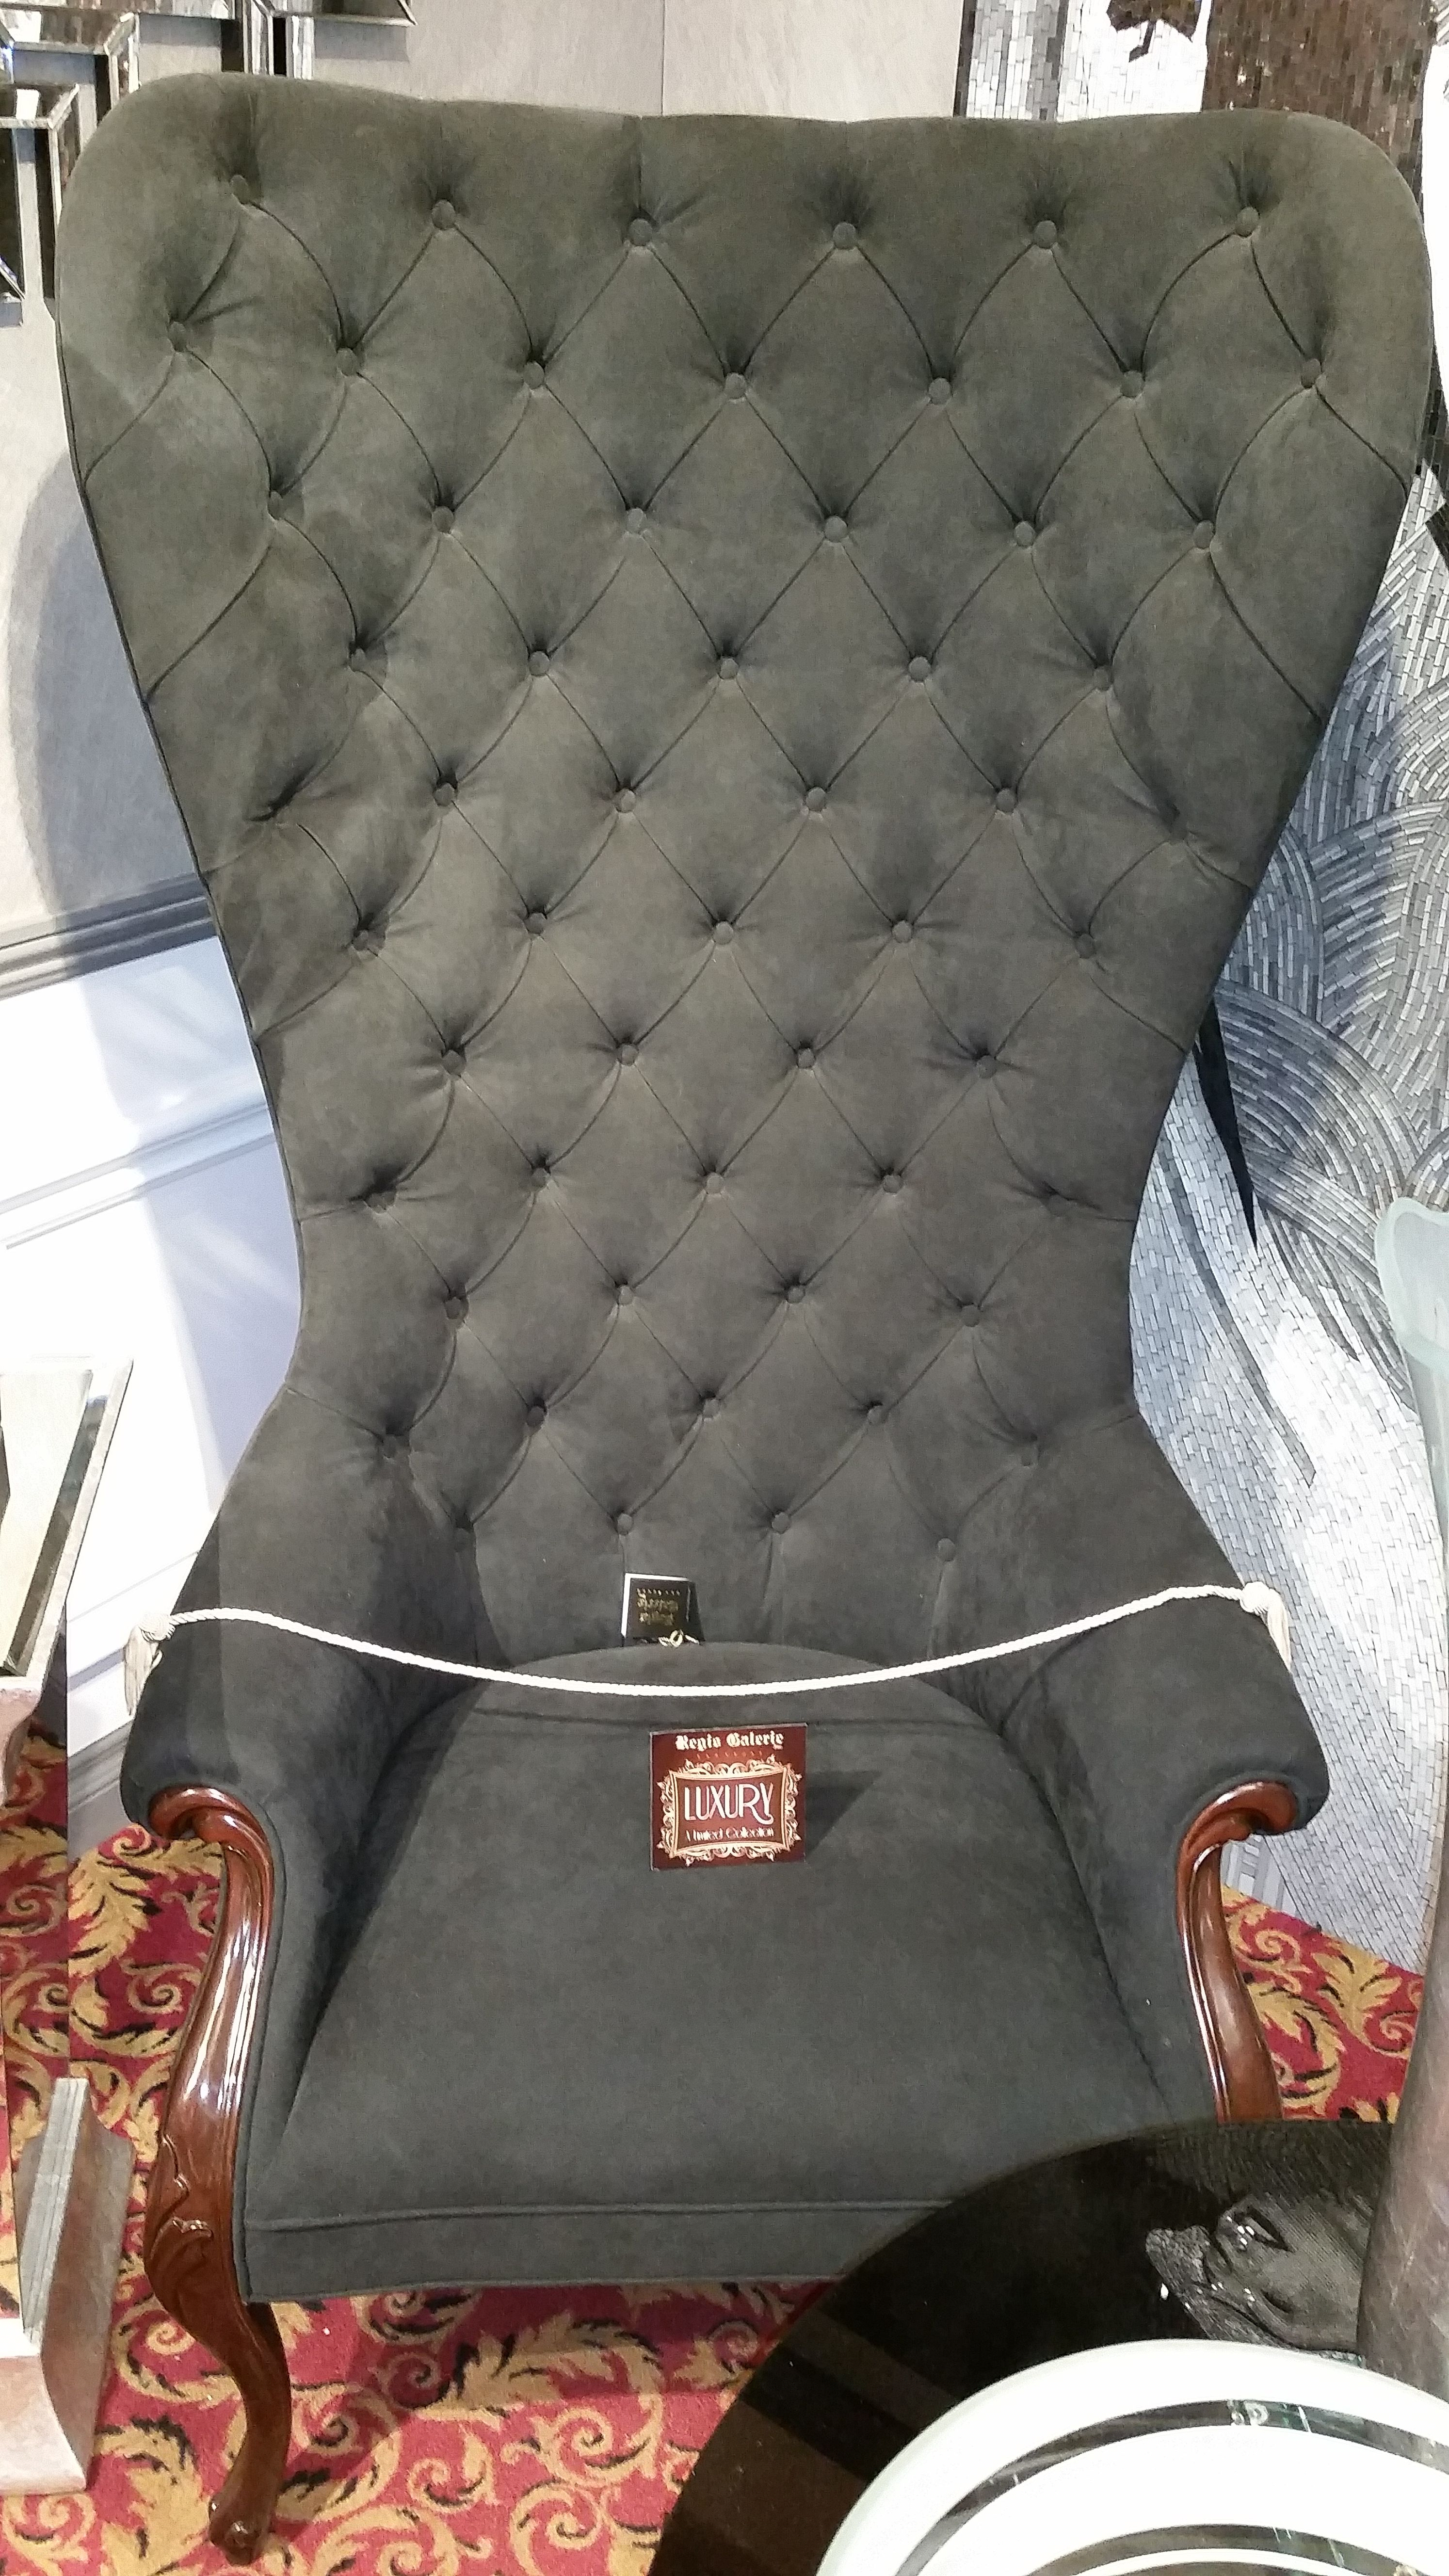 Black tufted high-back chair